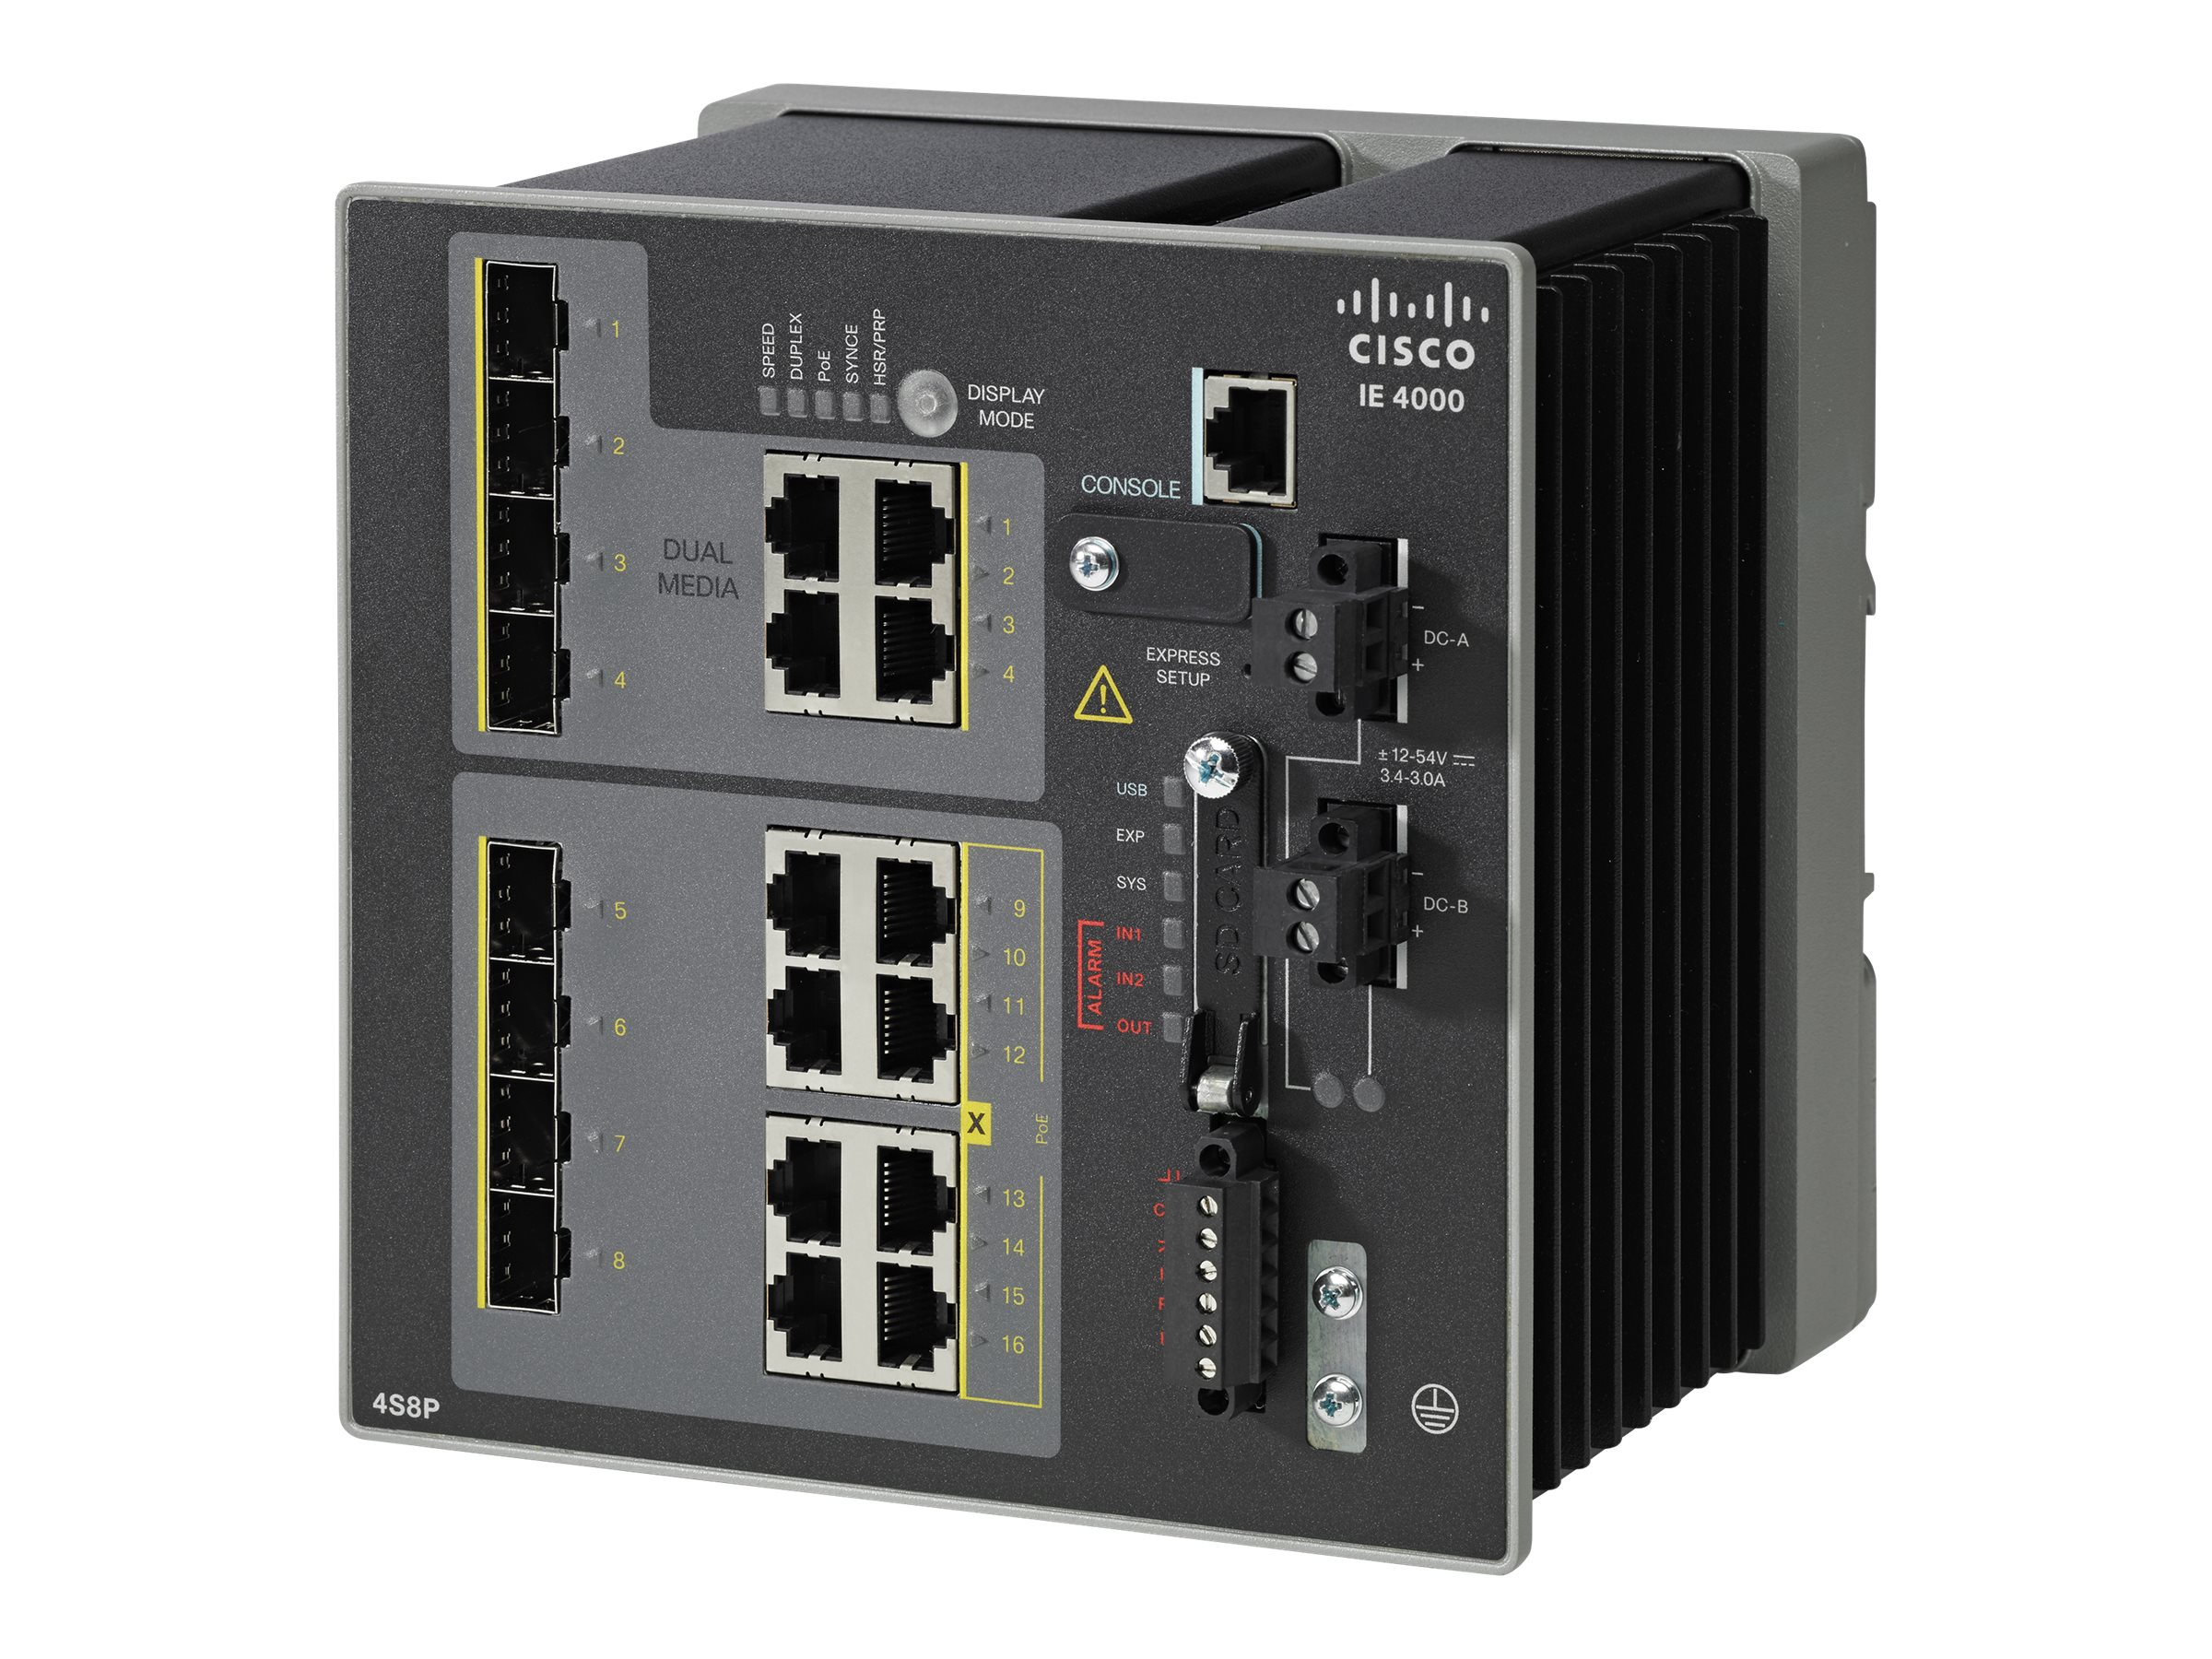 Cisco IE-4000-4GC4GP4G-E Image 1